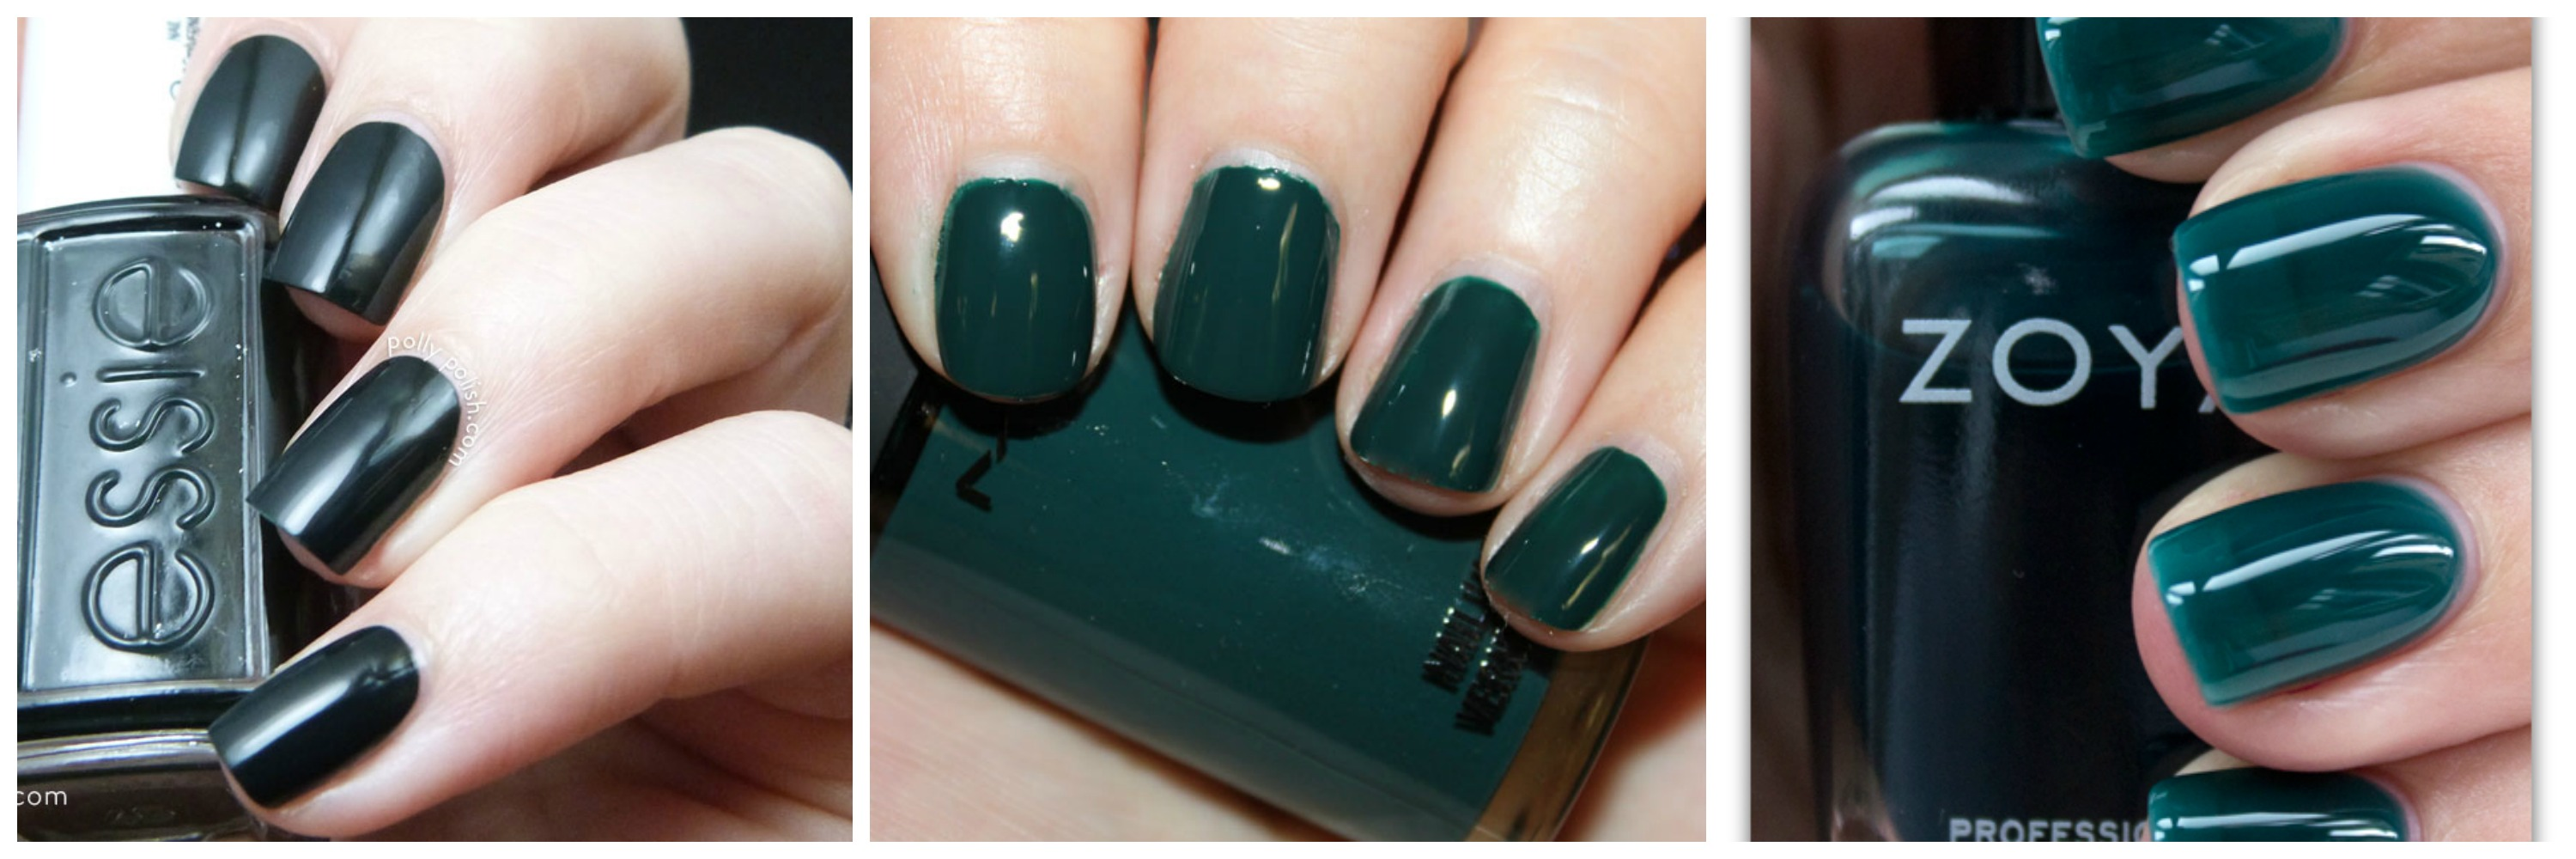 Dark Green Nailpolishes Essie MAC Zoya Style domination Ottawa Blogger Fashion